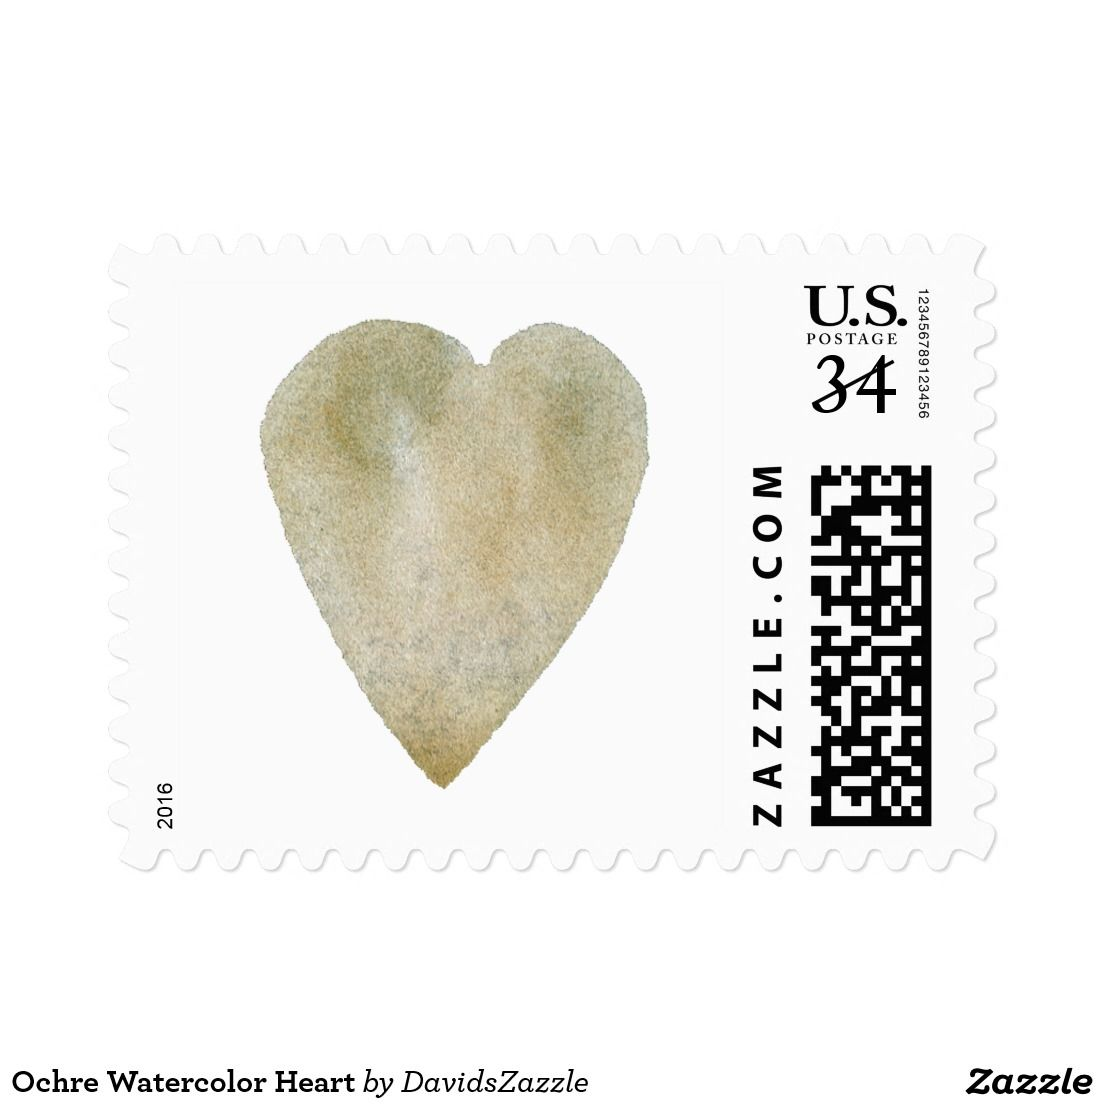 Ochre Watercolor Heart Postage  Watercolors Supplies And Friends